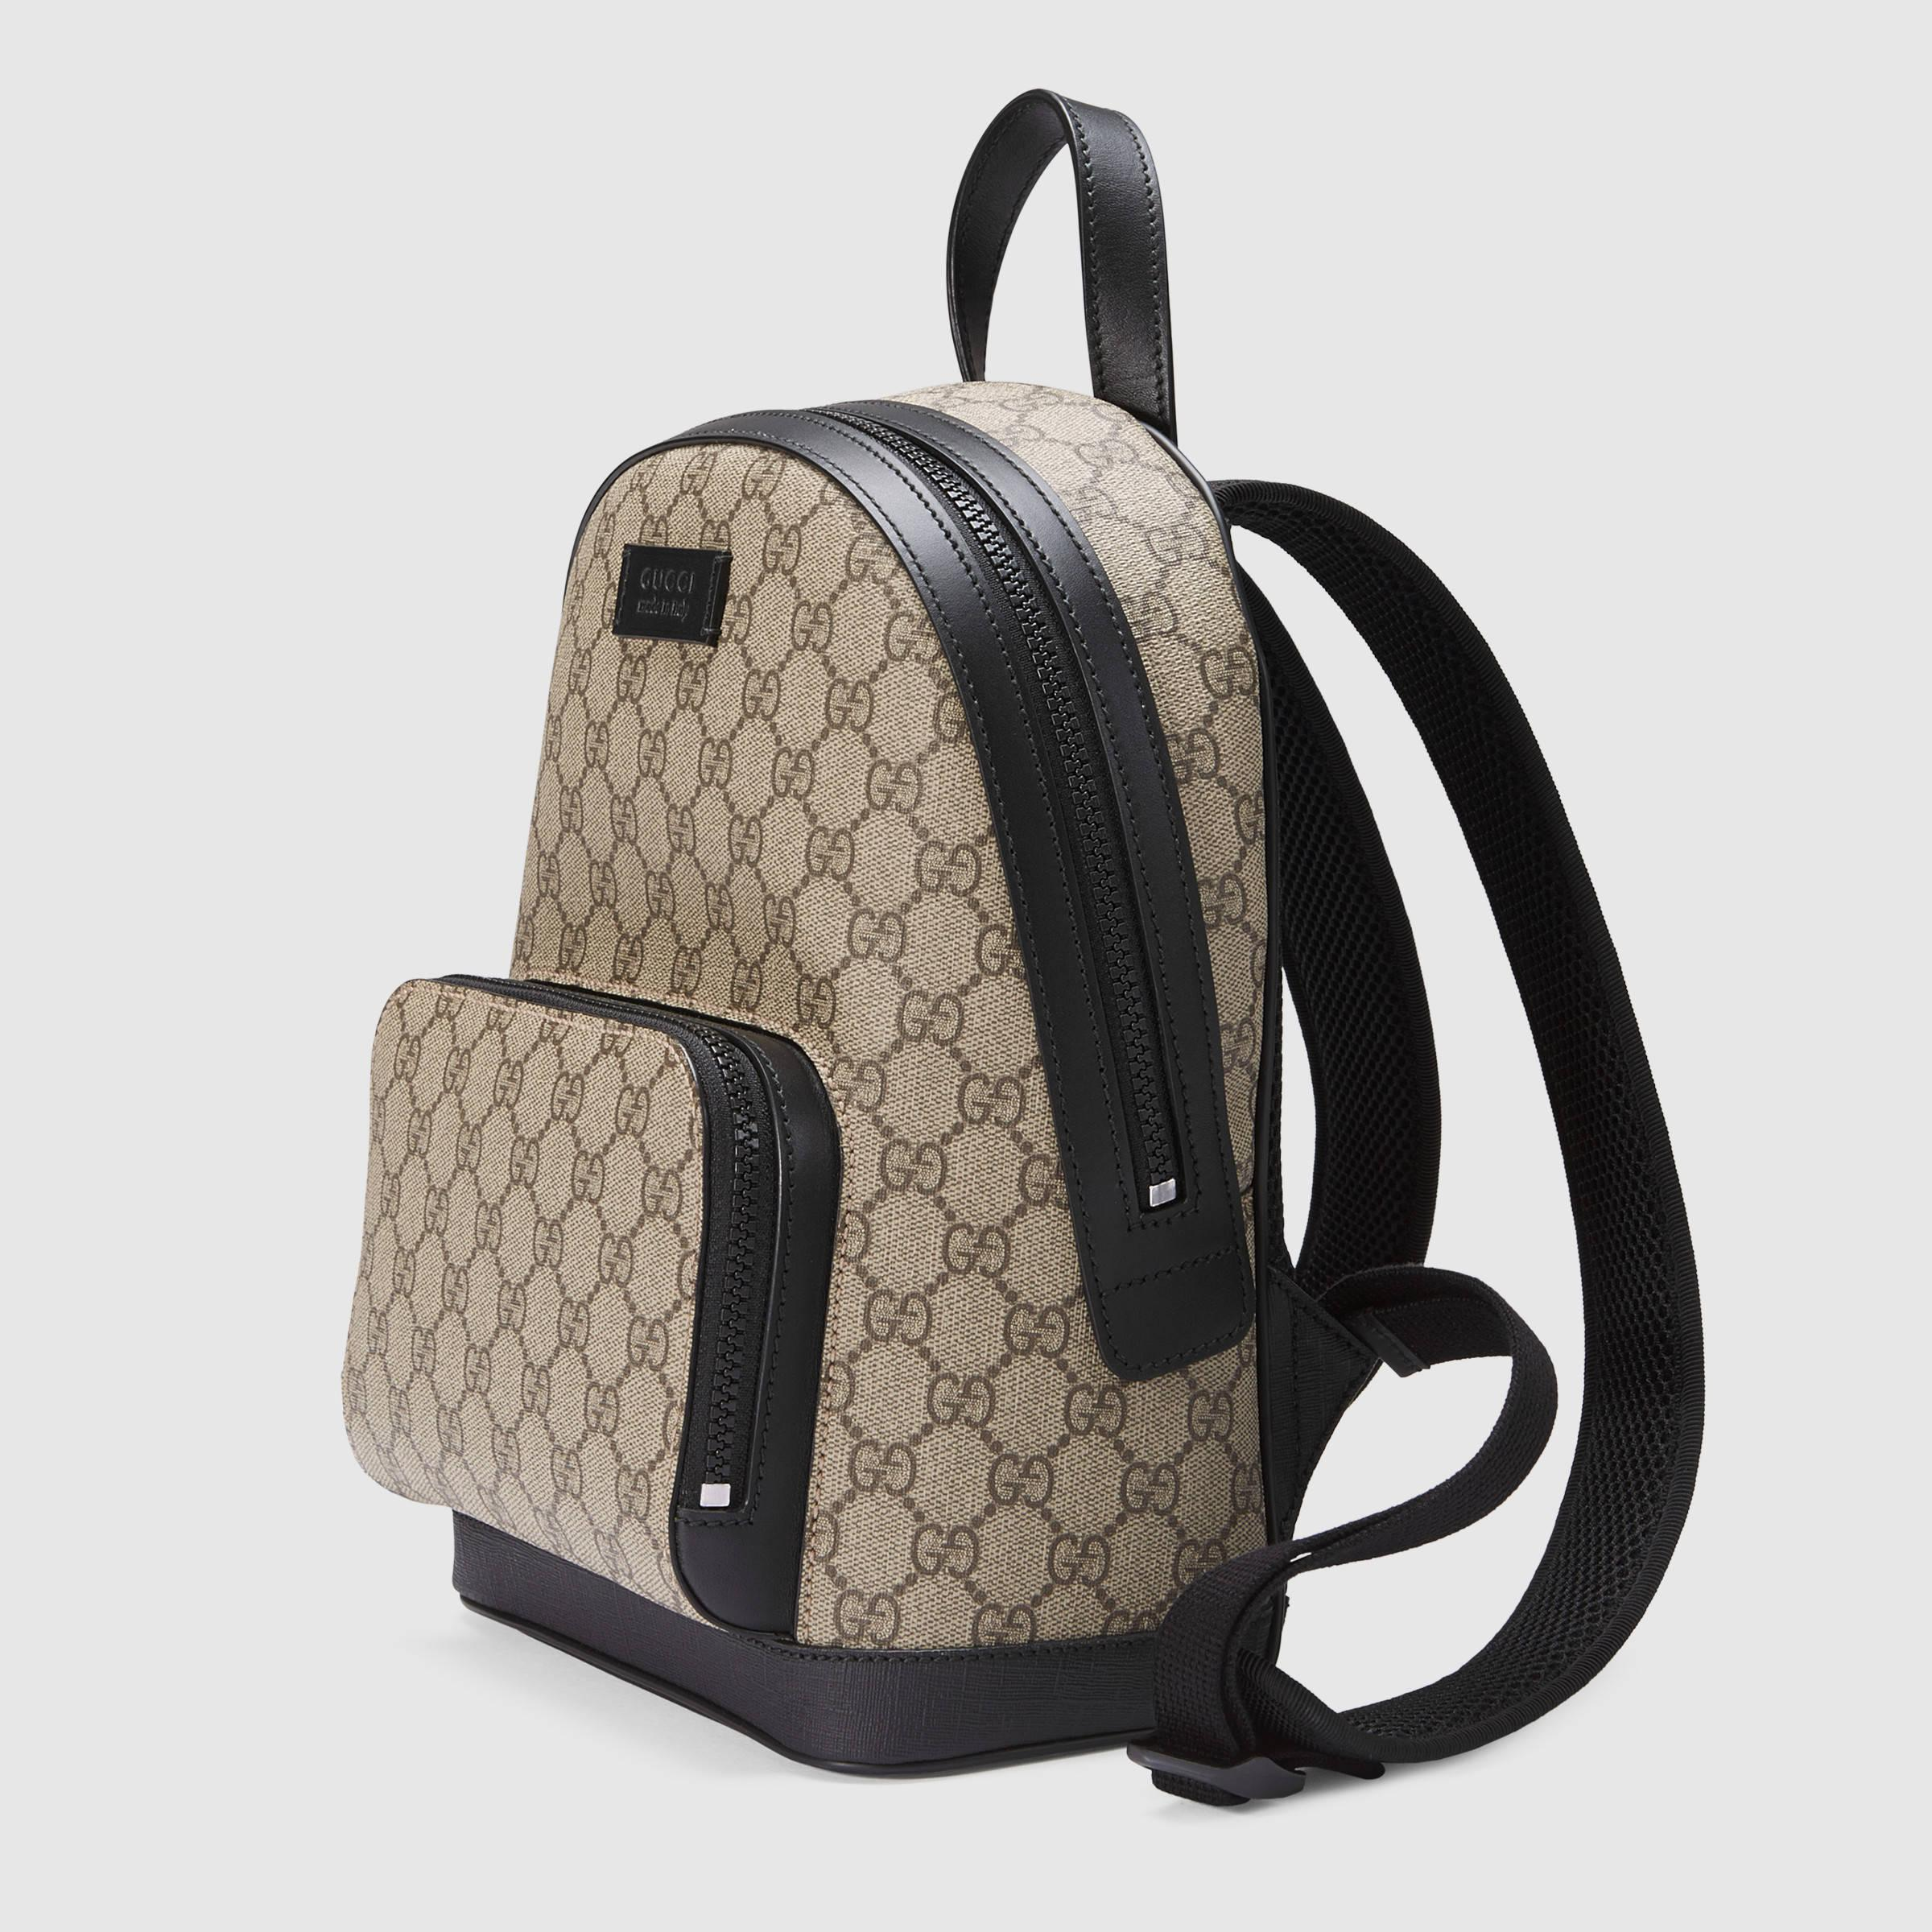 Lyst - Gucci Gg Supreme Small Backpack in Black